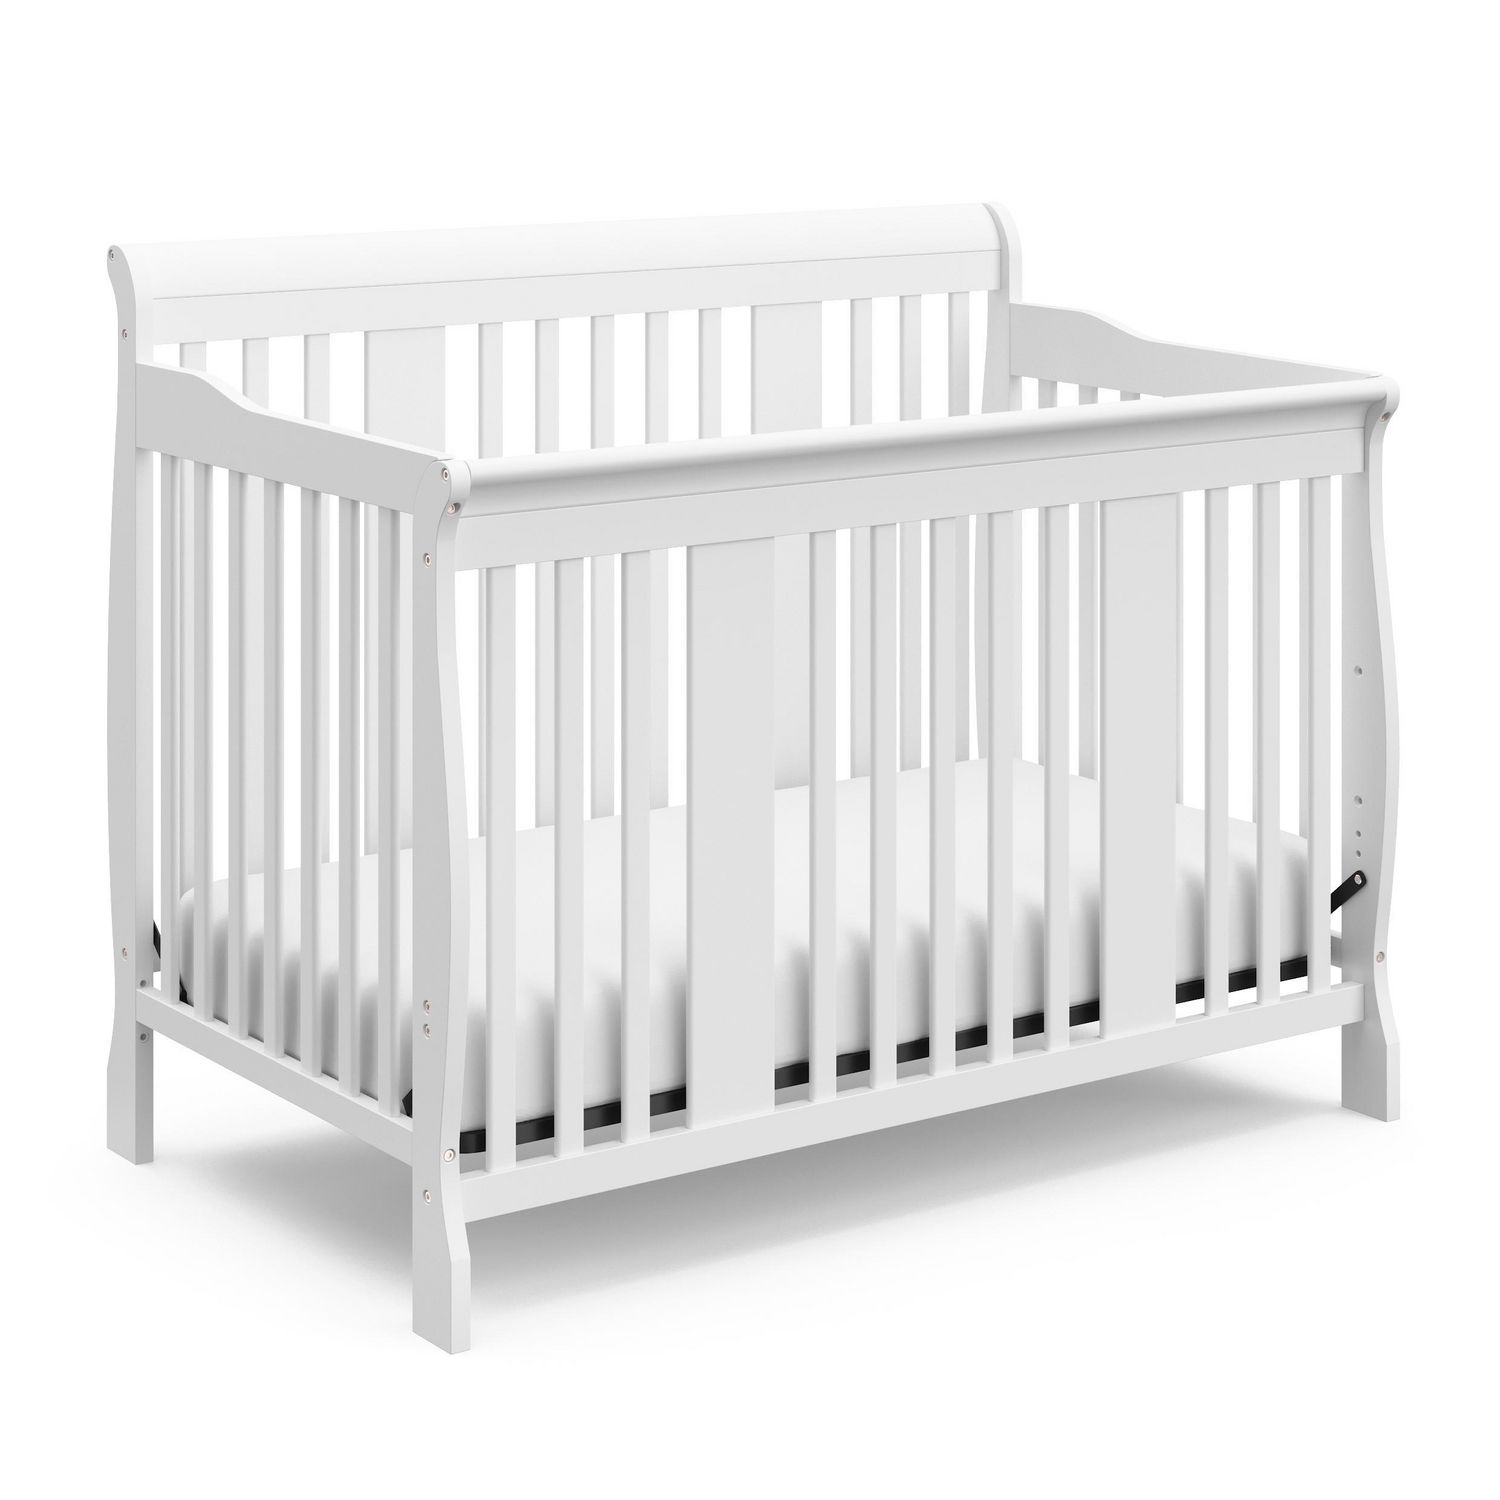 amazon sophia the in com finley keyword list and french white word synonyms of convertible antonyms sorelle cribs crib